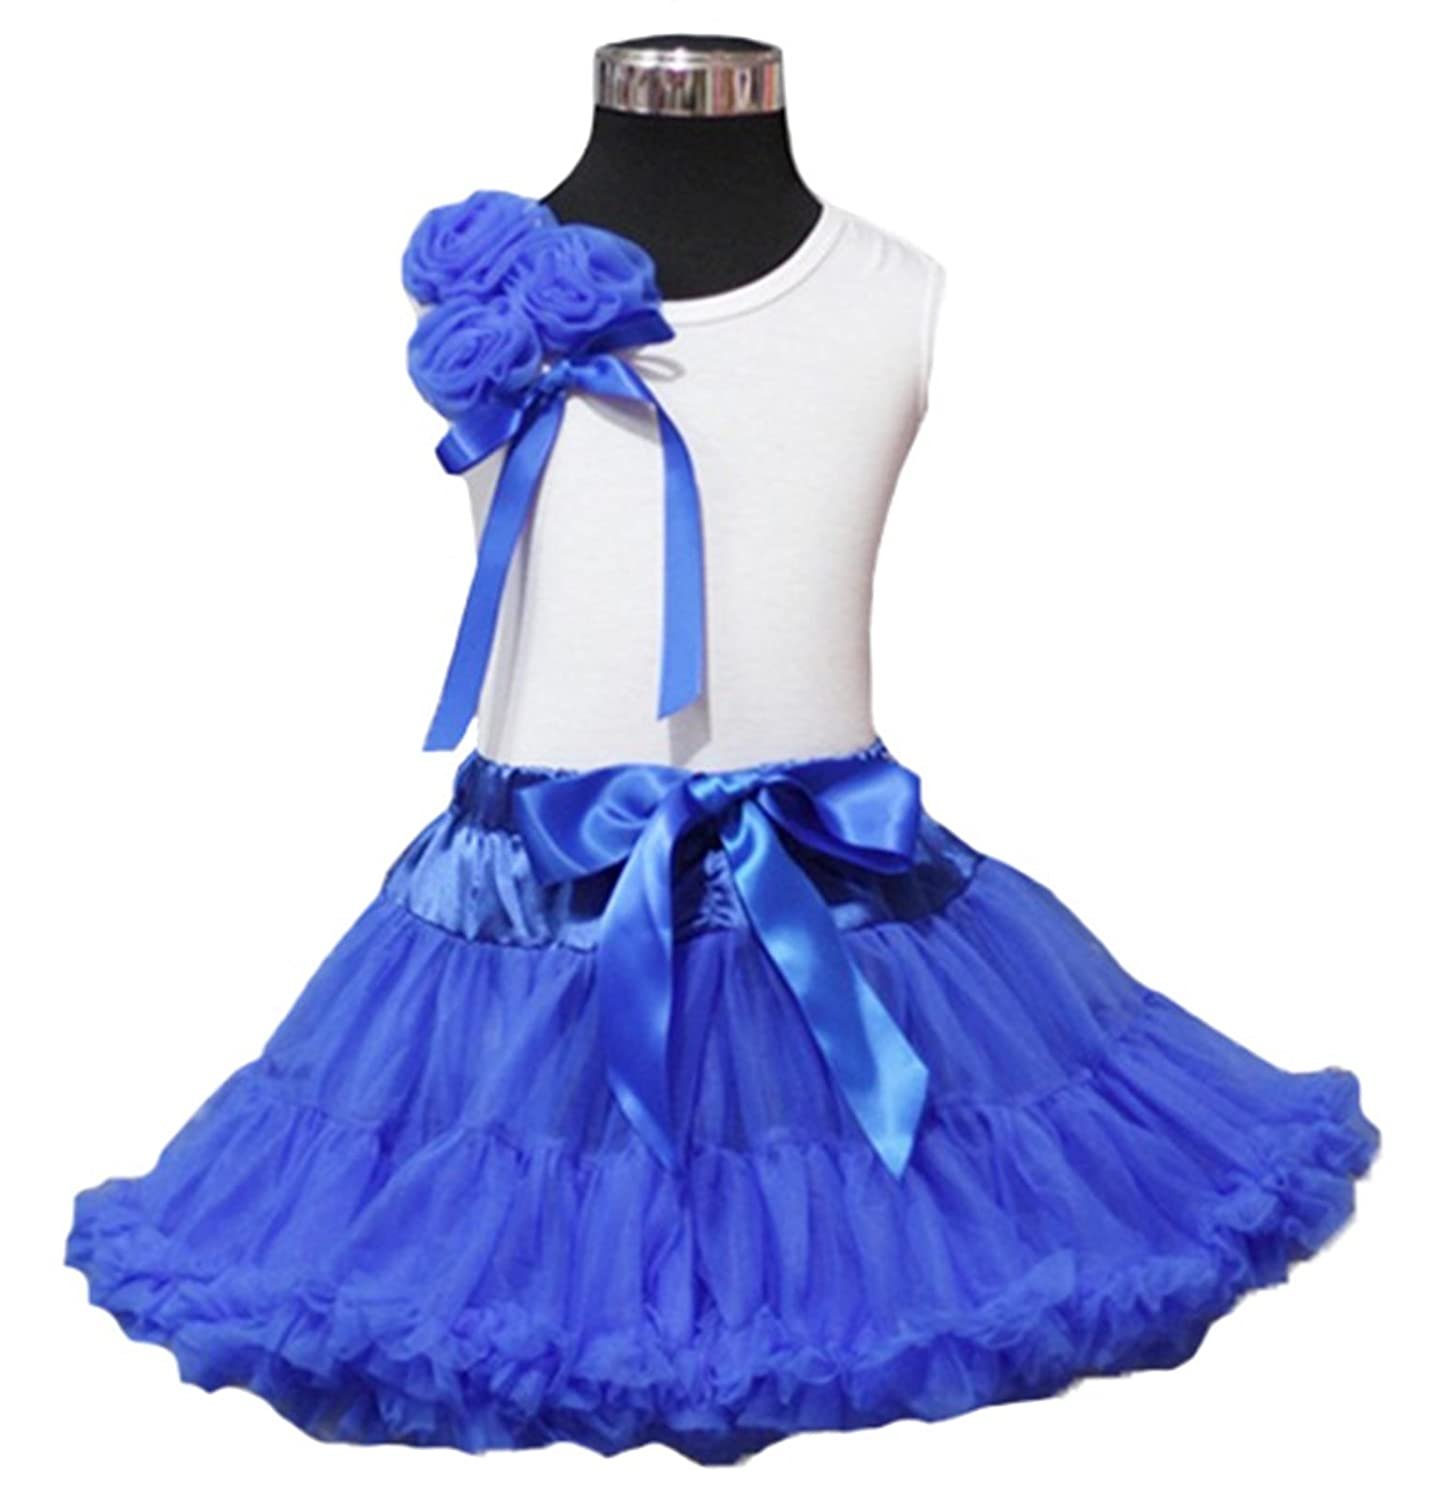 4th July Bunch of Blue Rosette White Top Royal Blue Pettiskirt Girl Set 1-8y